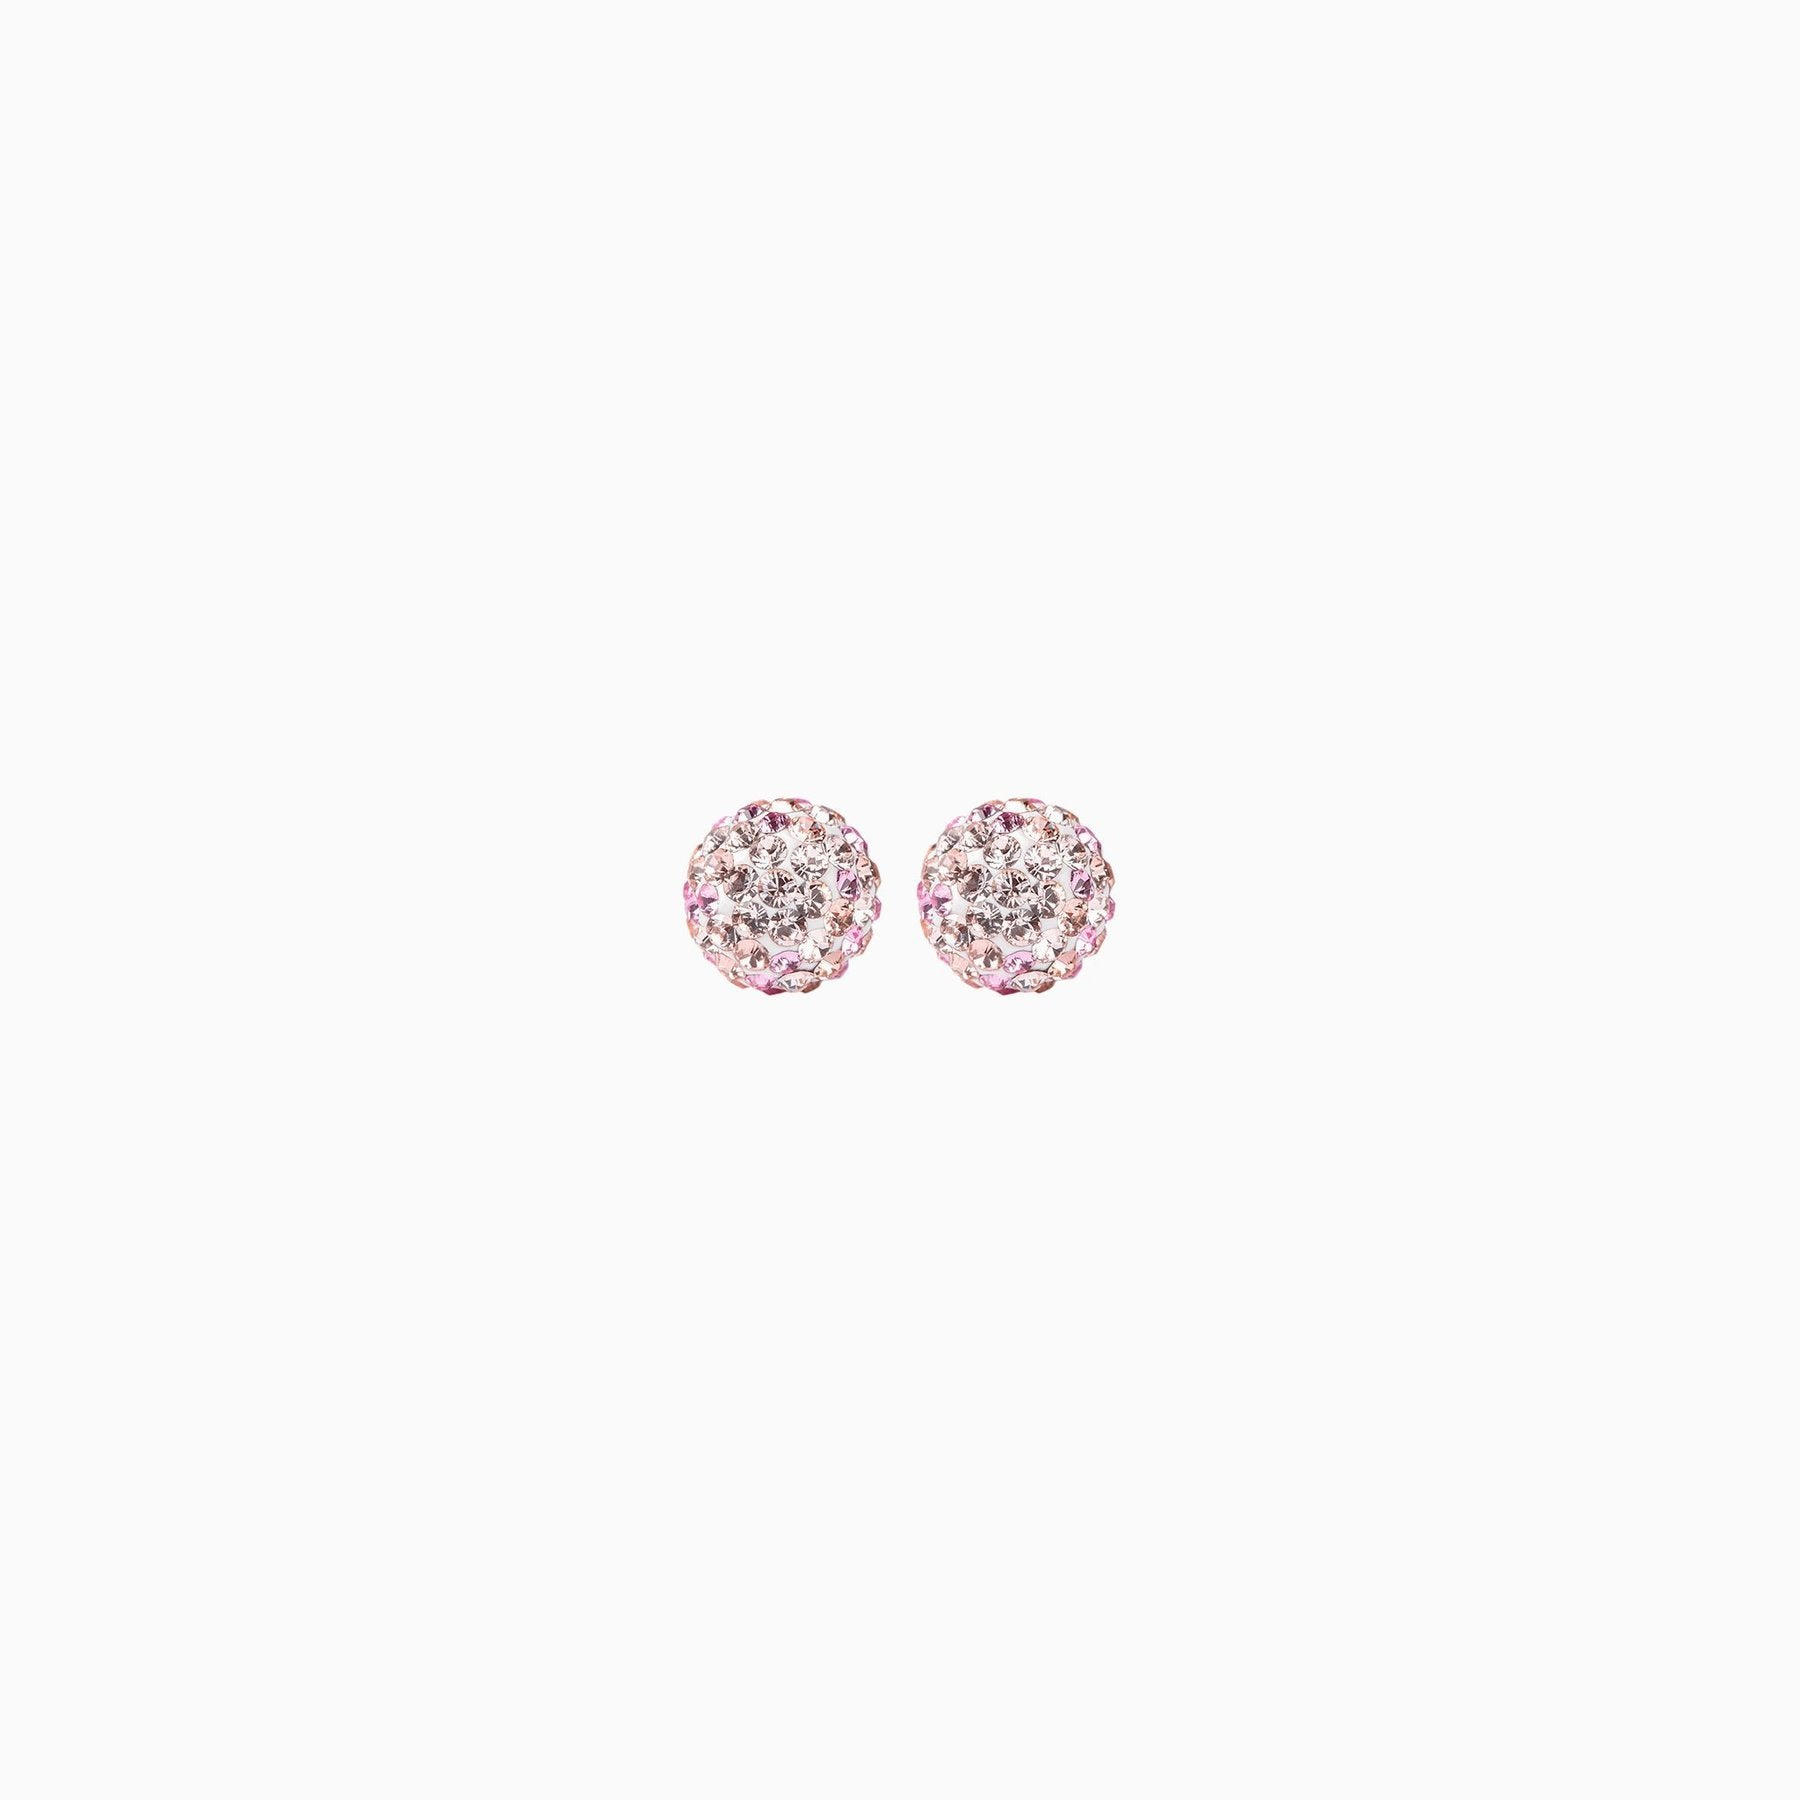 H&B Sparkle Ball™ Stud Earrings - 8mm Pink Champagne